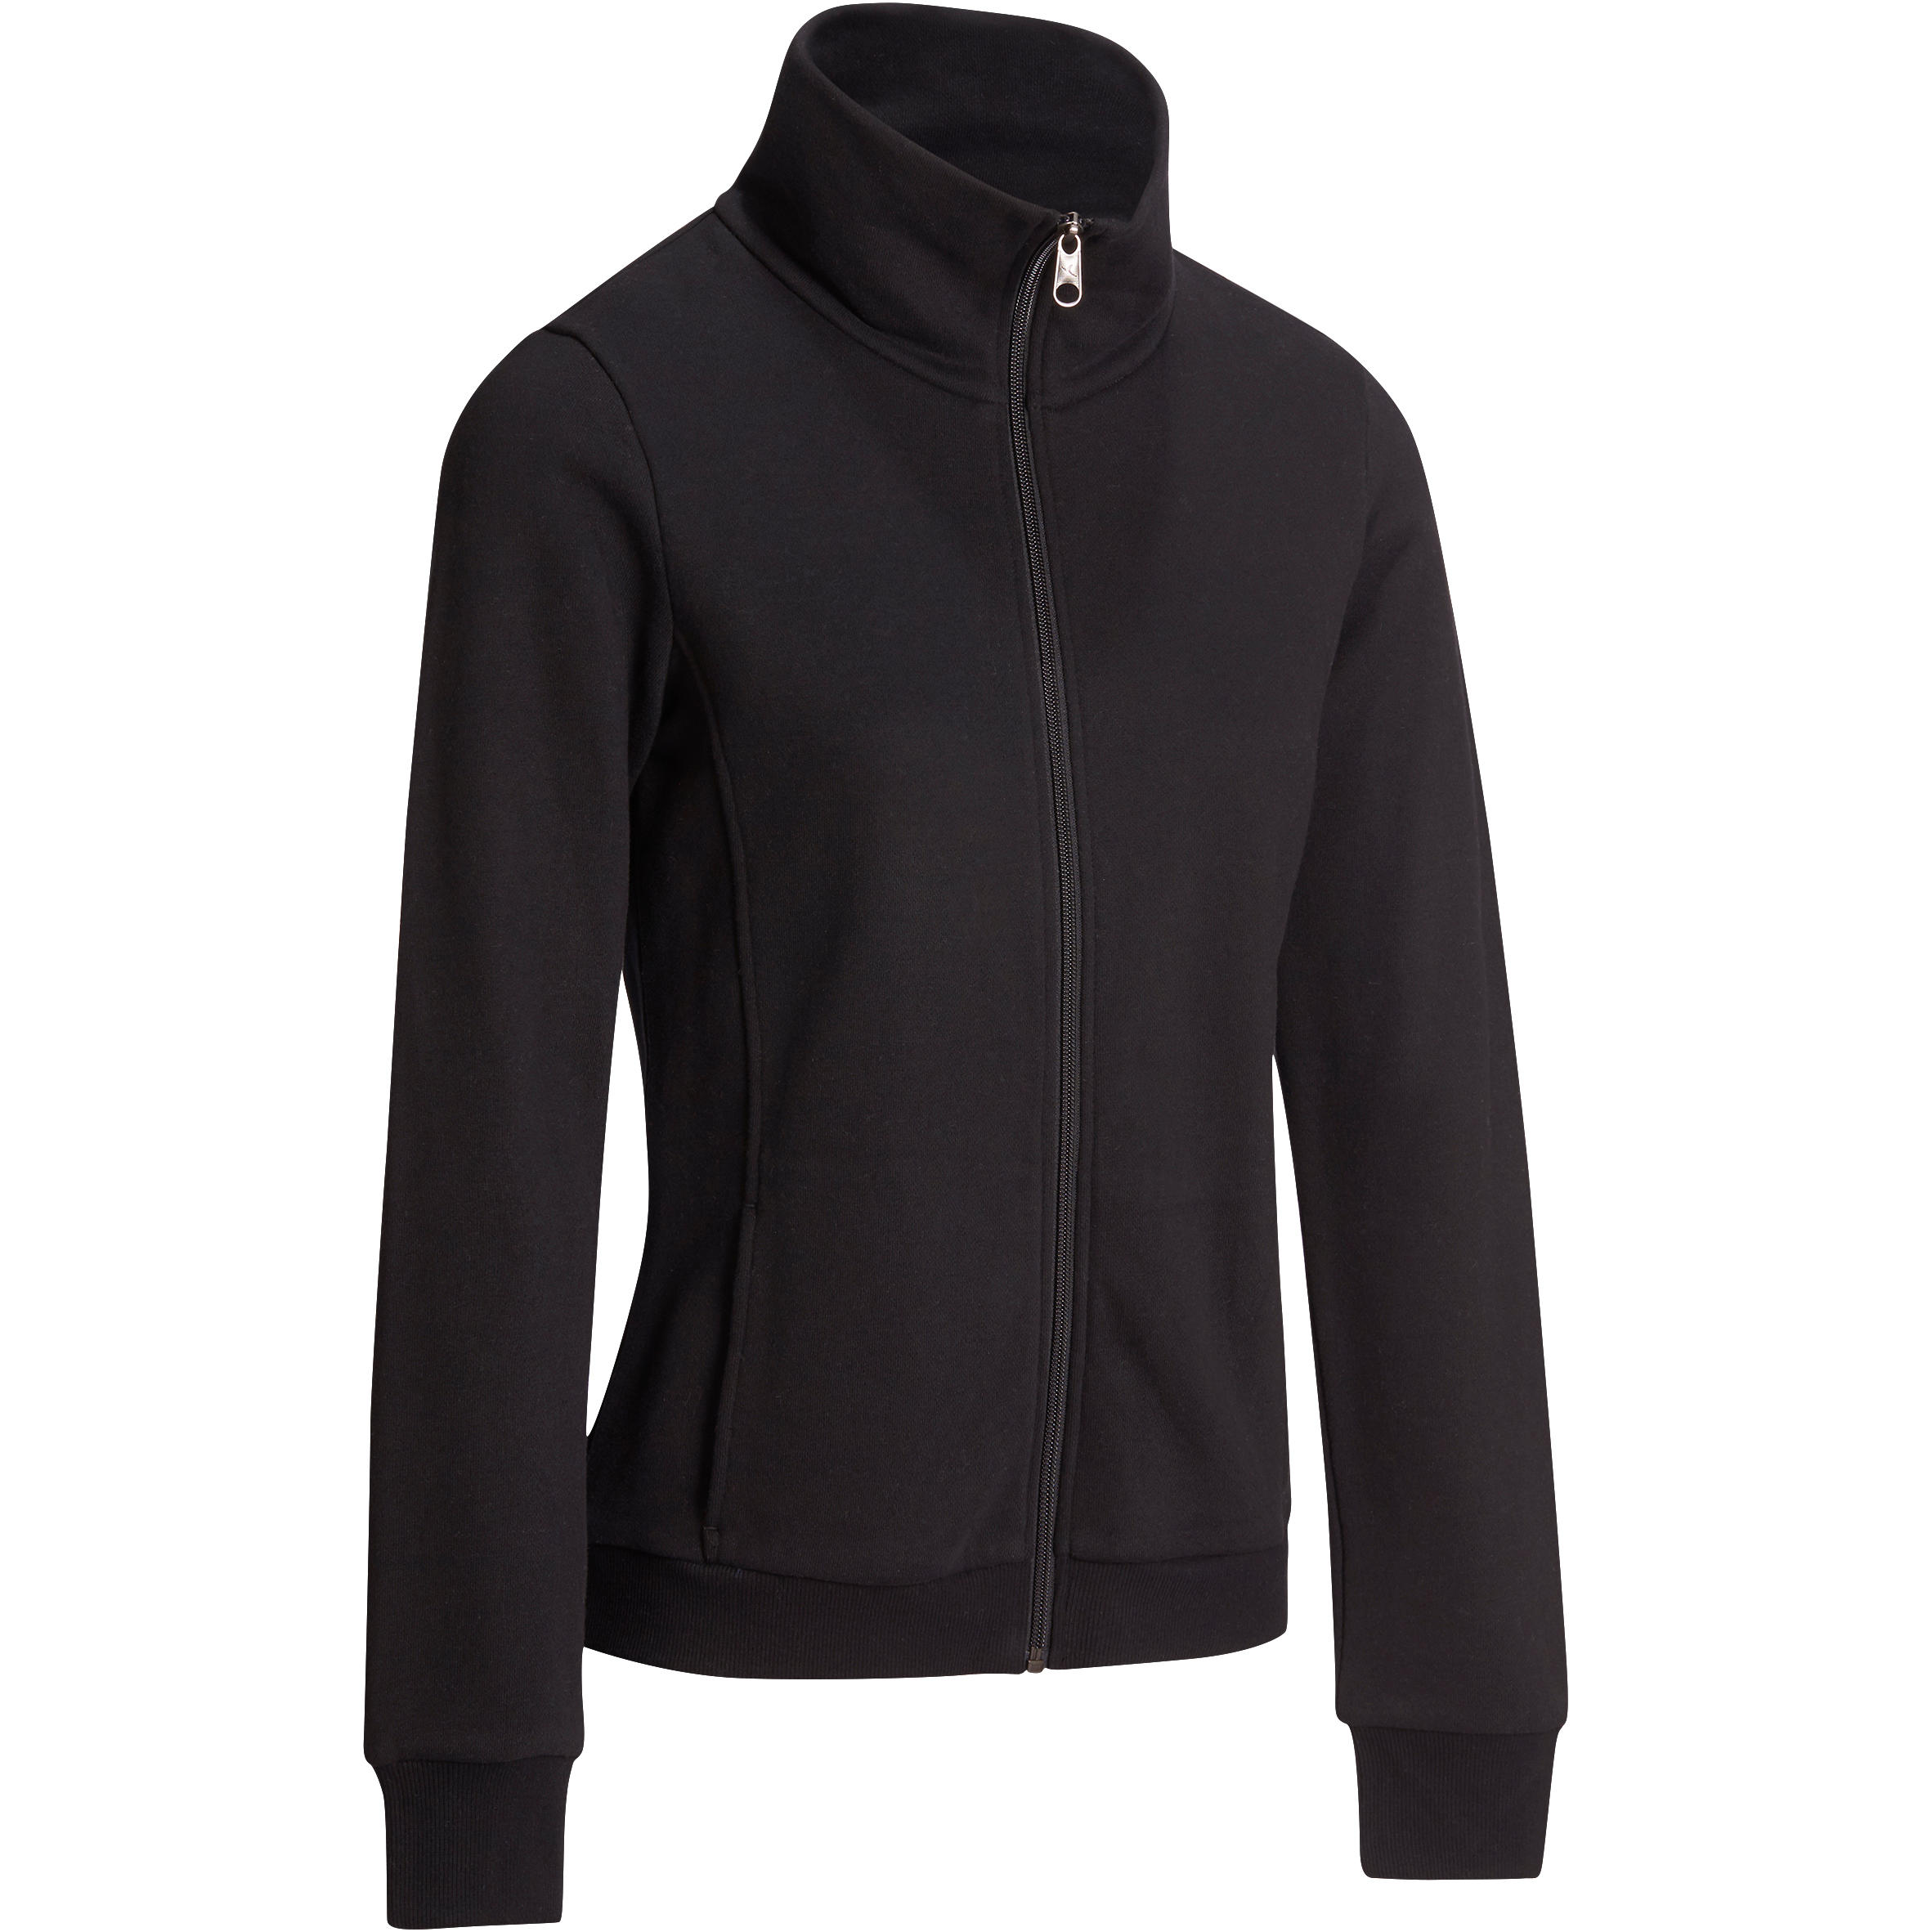 500 Women's Stretching High-Neck Jacket - Black